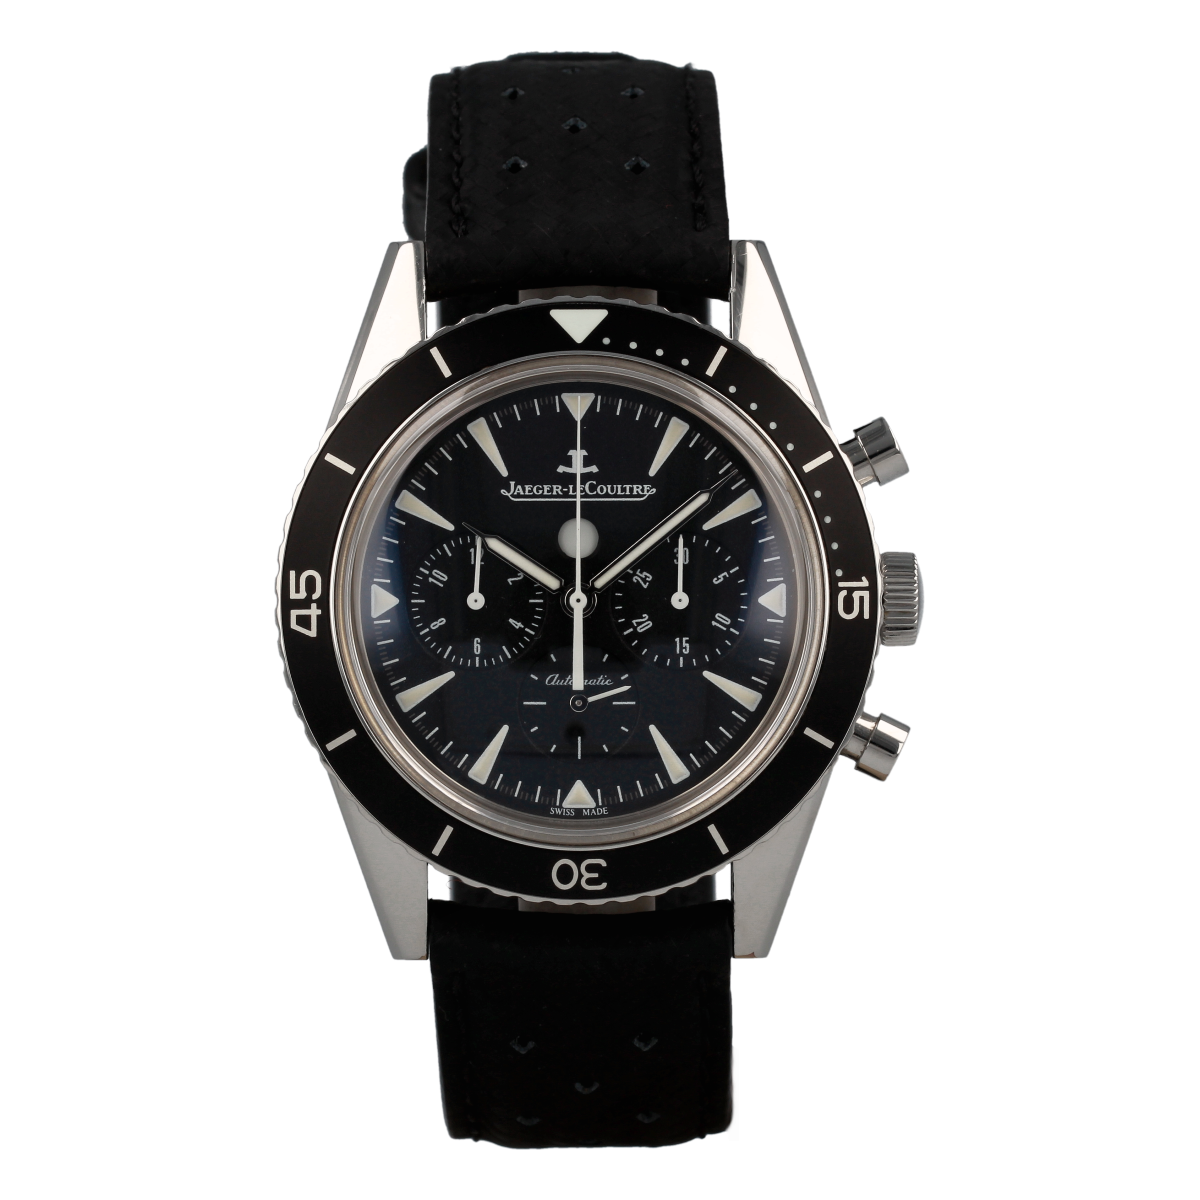 Jaeger-LeCoultre Deep Sea Chronograph | Buy pre-owned Jaeger-LeCoultre watch